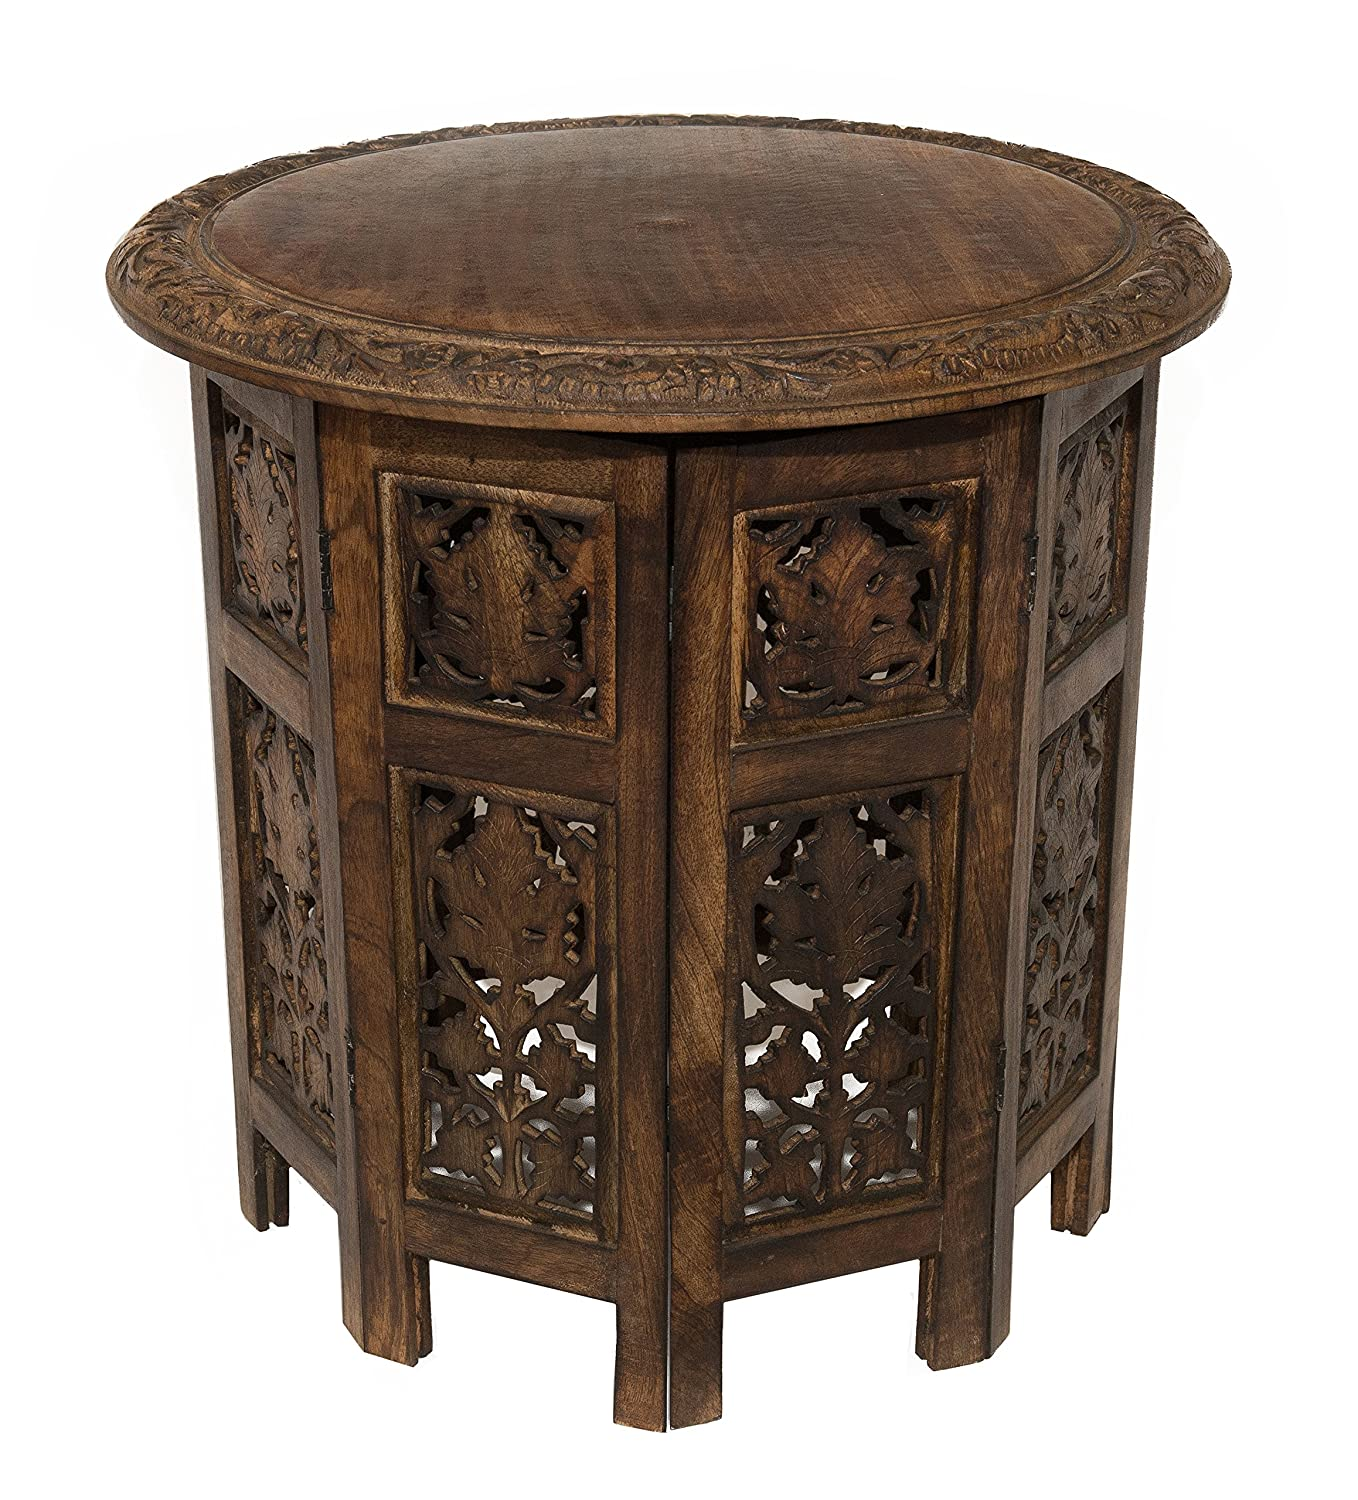 Solid wood hand carved table antique style brown furniture for Home decor furniture